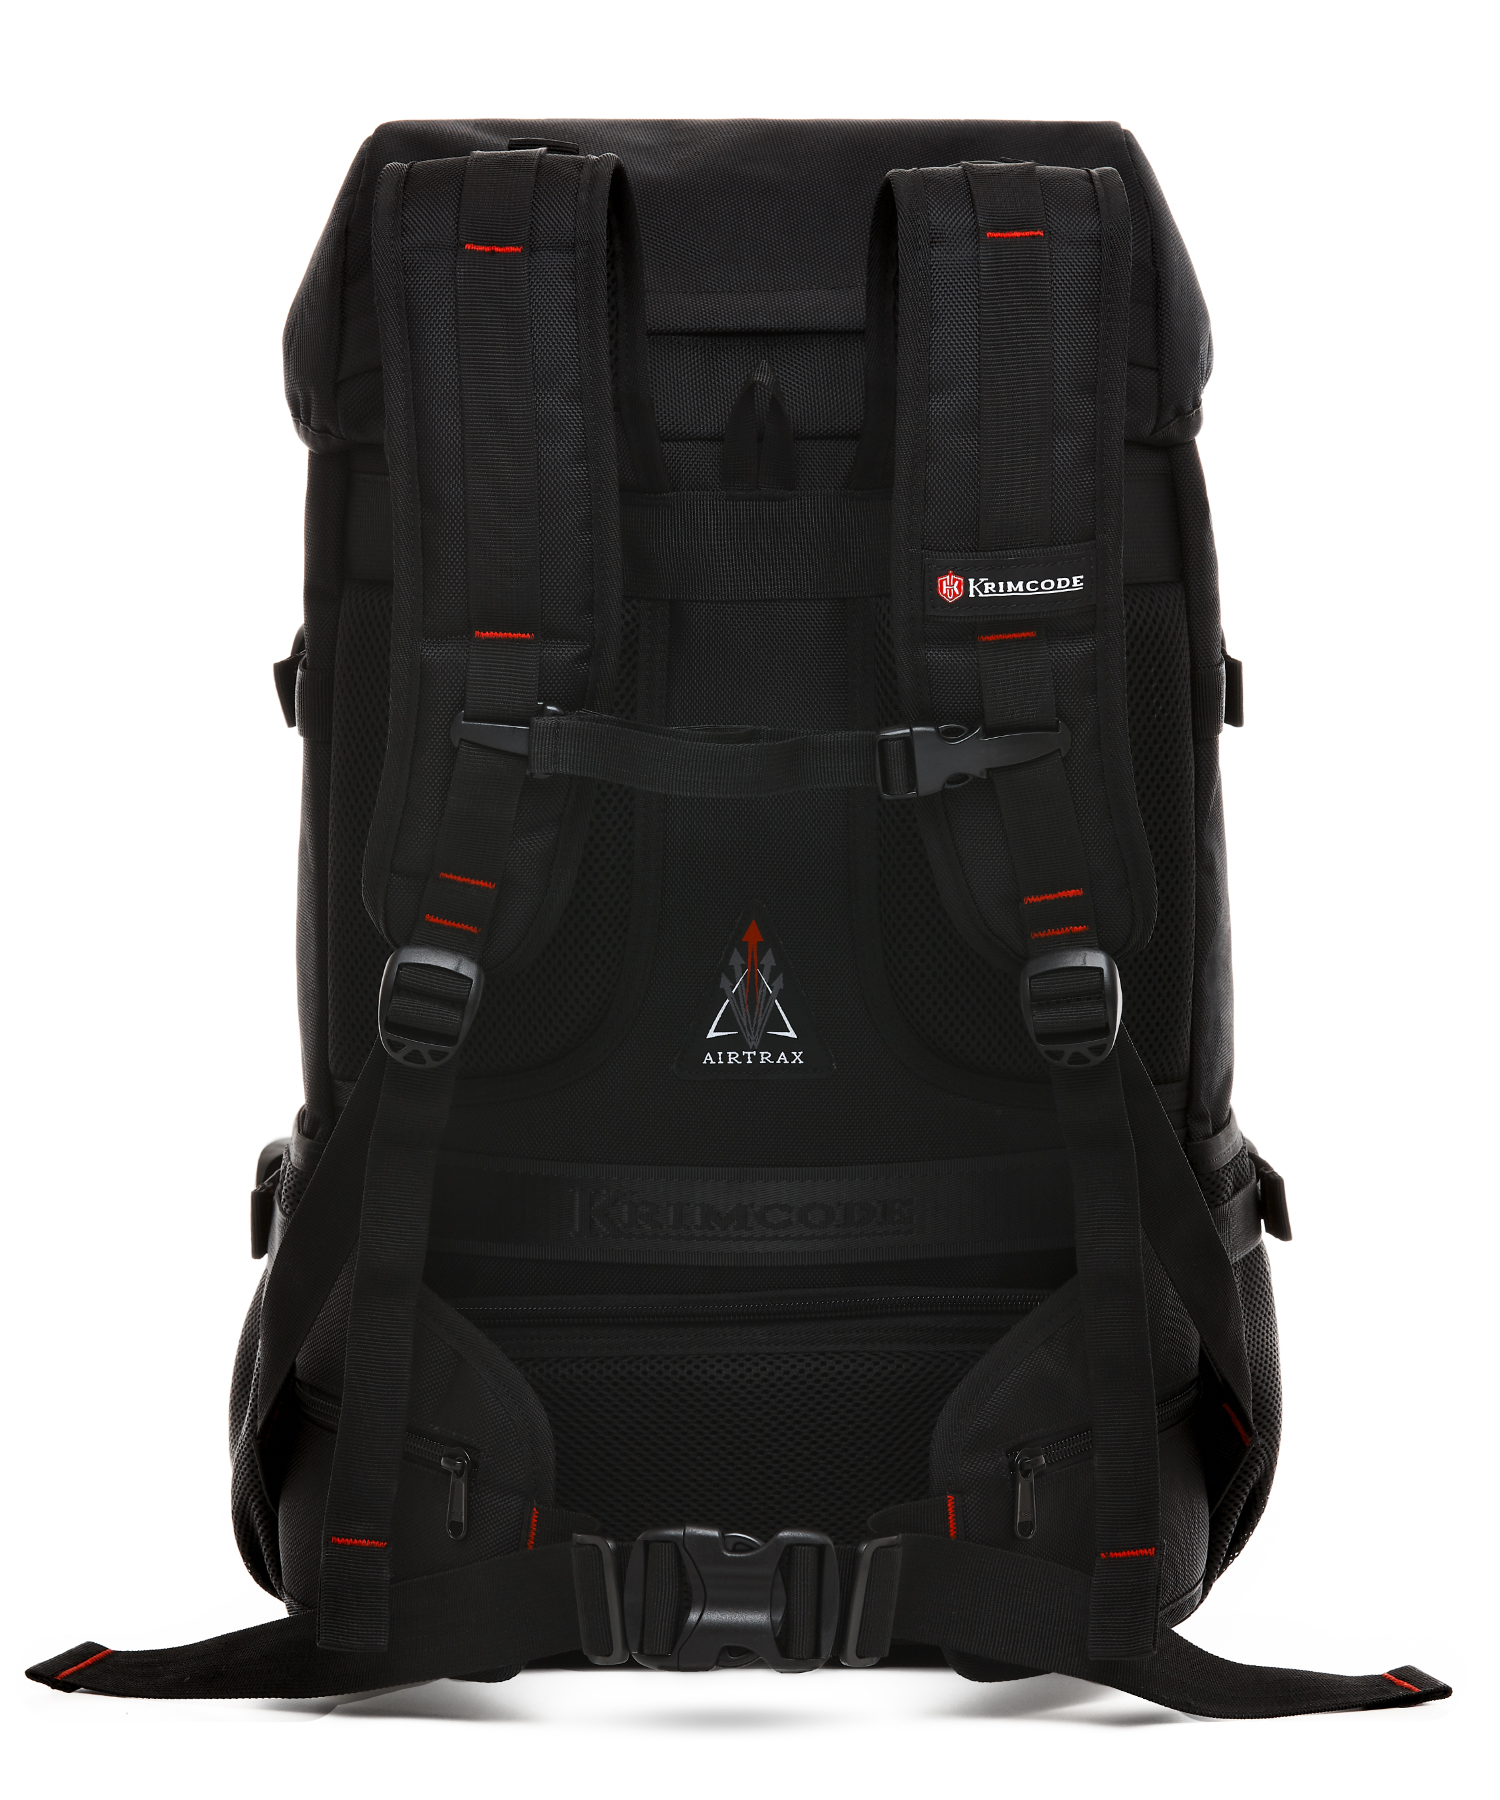 back perspective of krimcode backpack